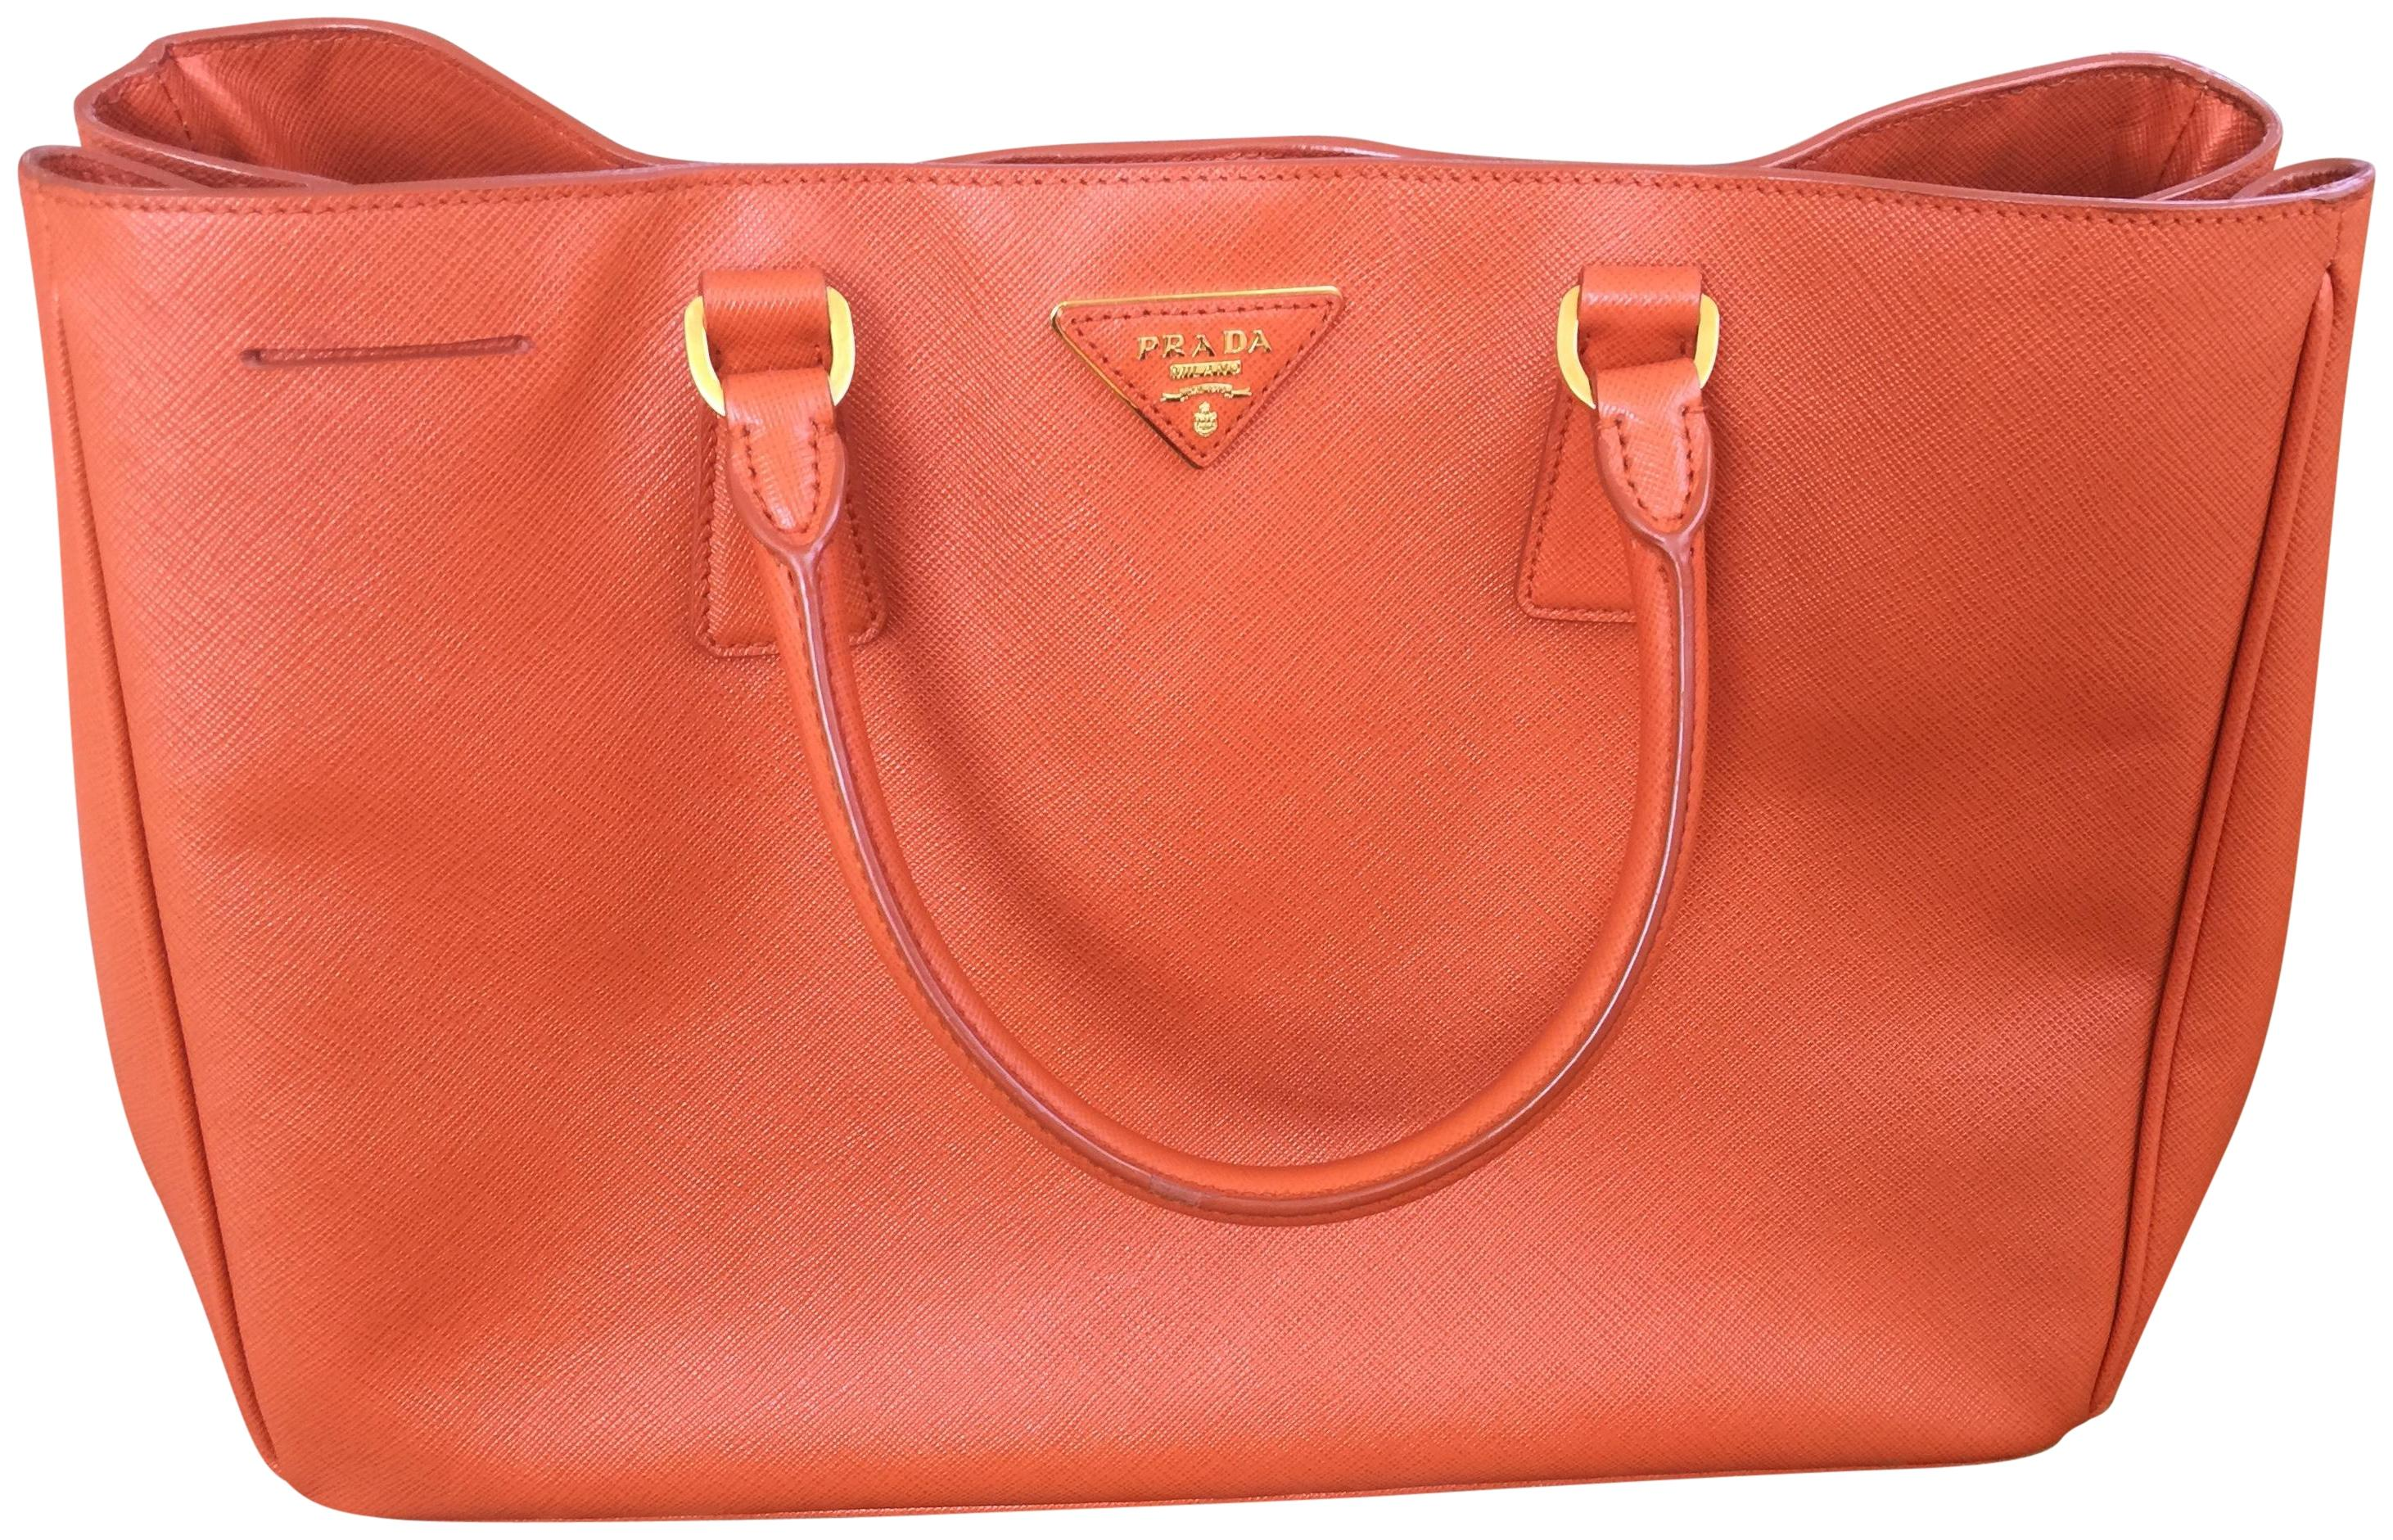 8314b1da330a ... coupon code for prada saffiano work tote in orange papaya d8326 a42bb  ...